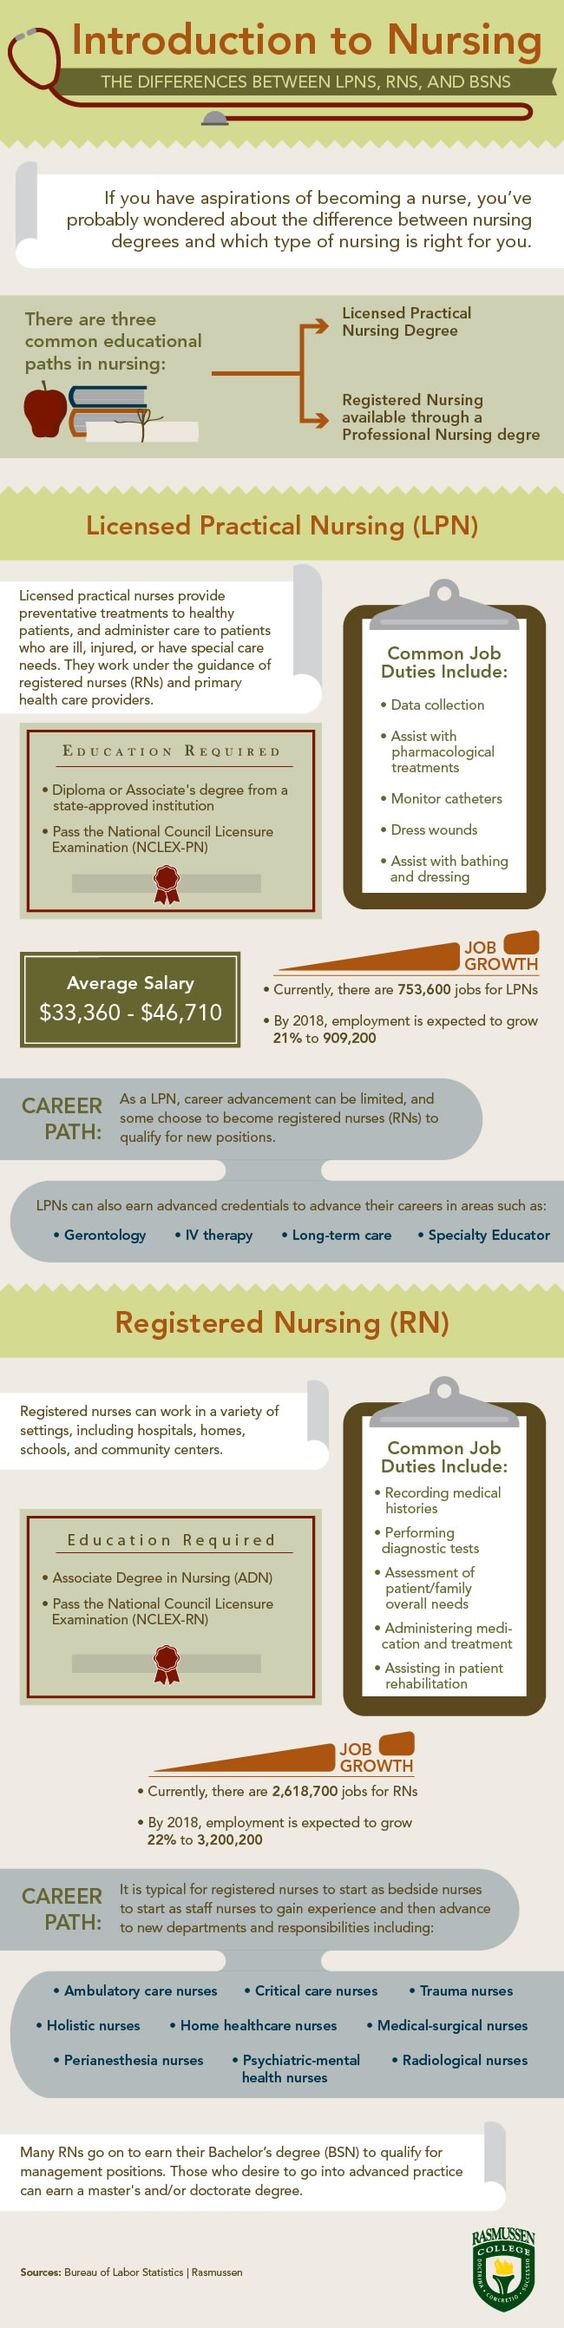 The various levels of a career in nursing can be confusing. Follow this infographic, brought to you by the Rasmussen College - School of Nursing, to showcase the various differences between Liscensed Practical Nurses (LPN), Registered Nurses (RN), and Bachelor's of Science in Nursing (BSN).